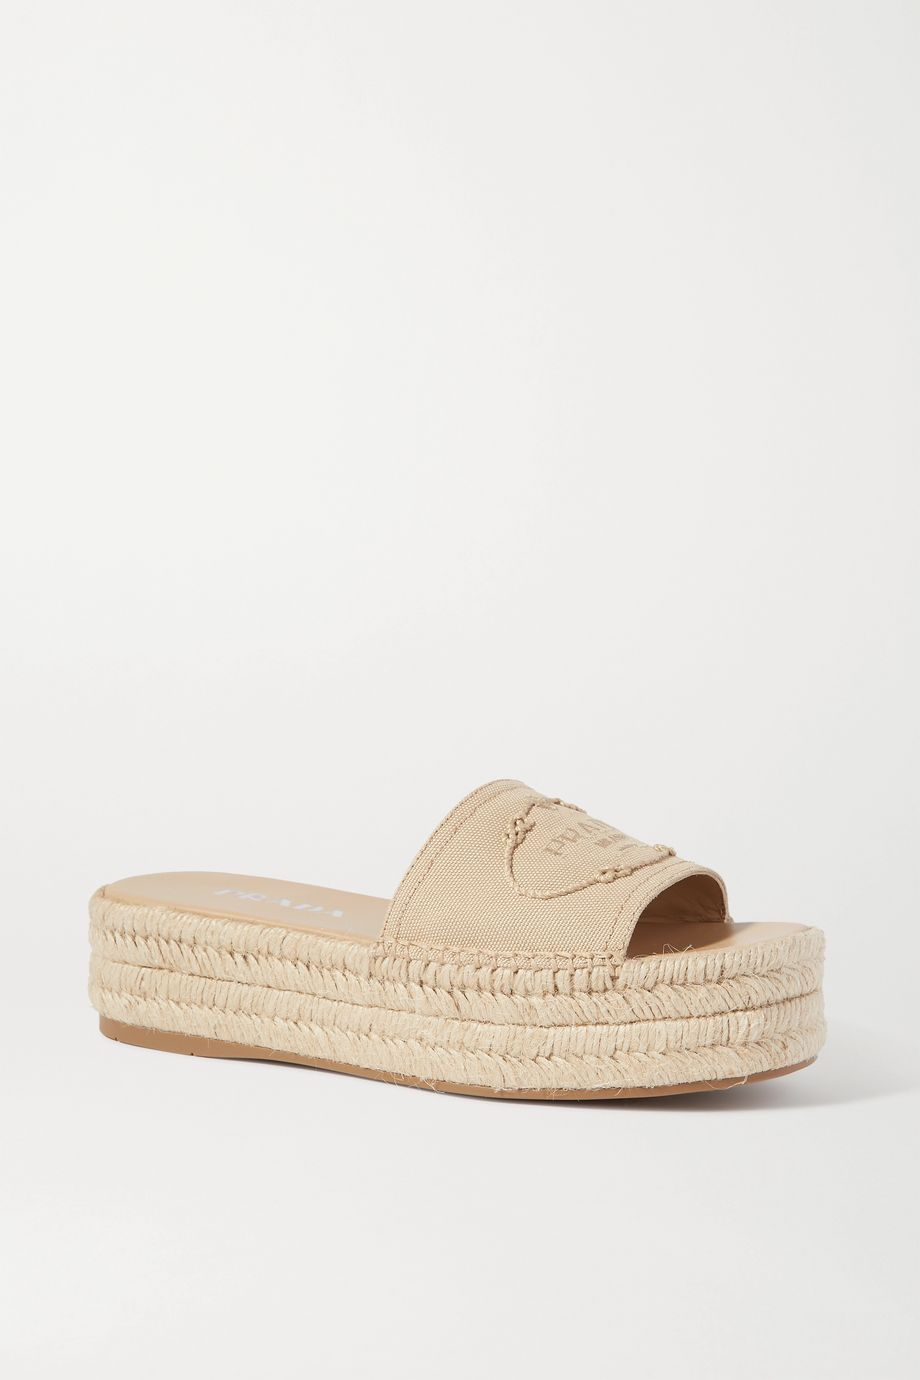 Prada Logo-embroidered canvas wedge espadrilles